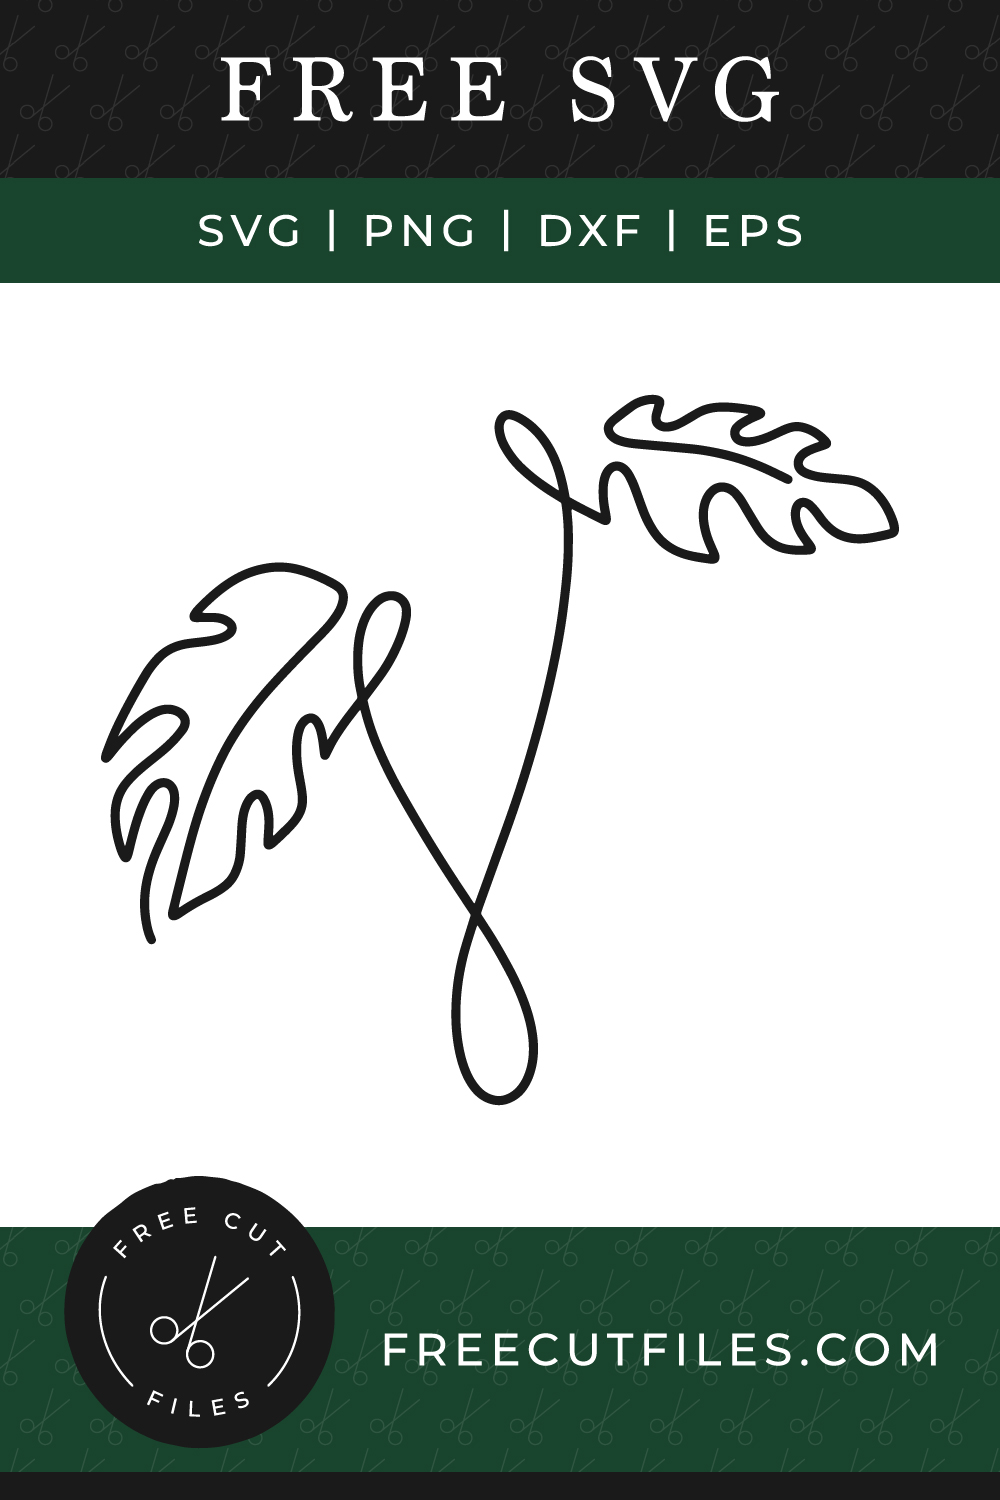 Free Tropical Leaves Continuous Line SVG